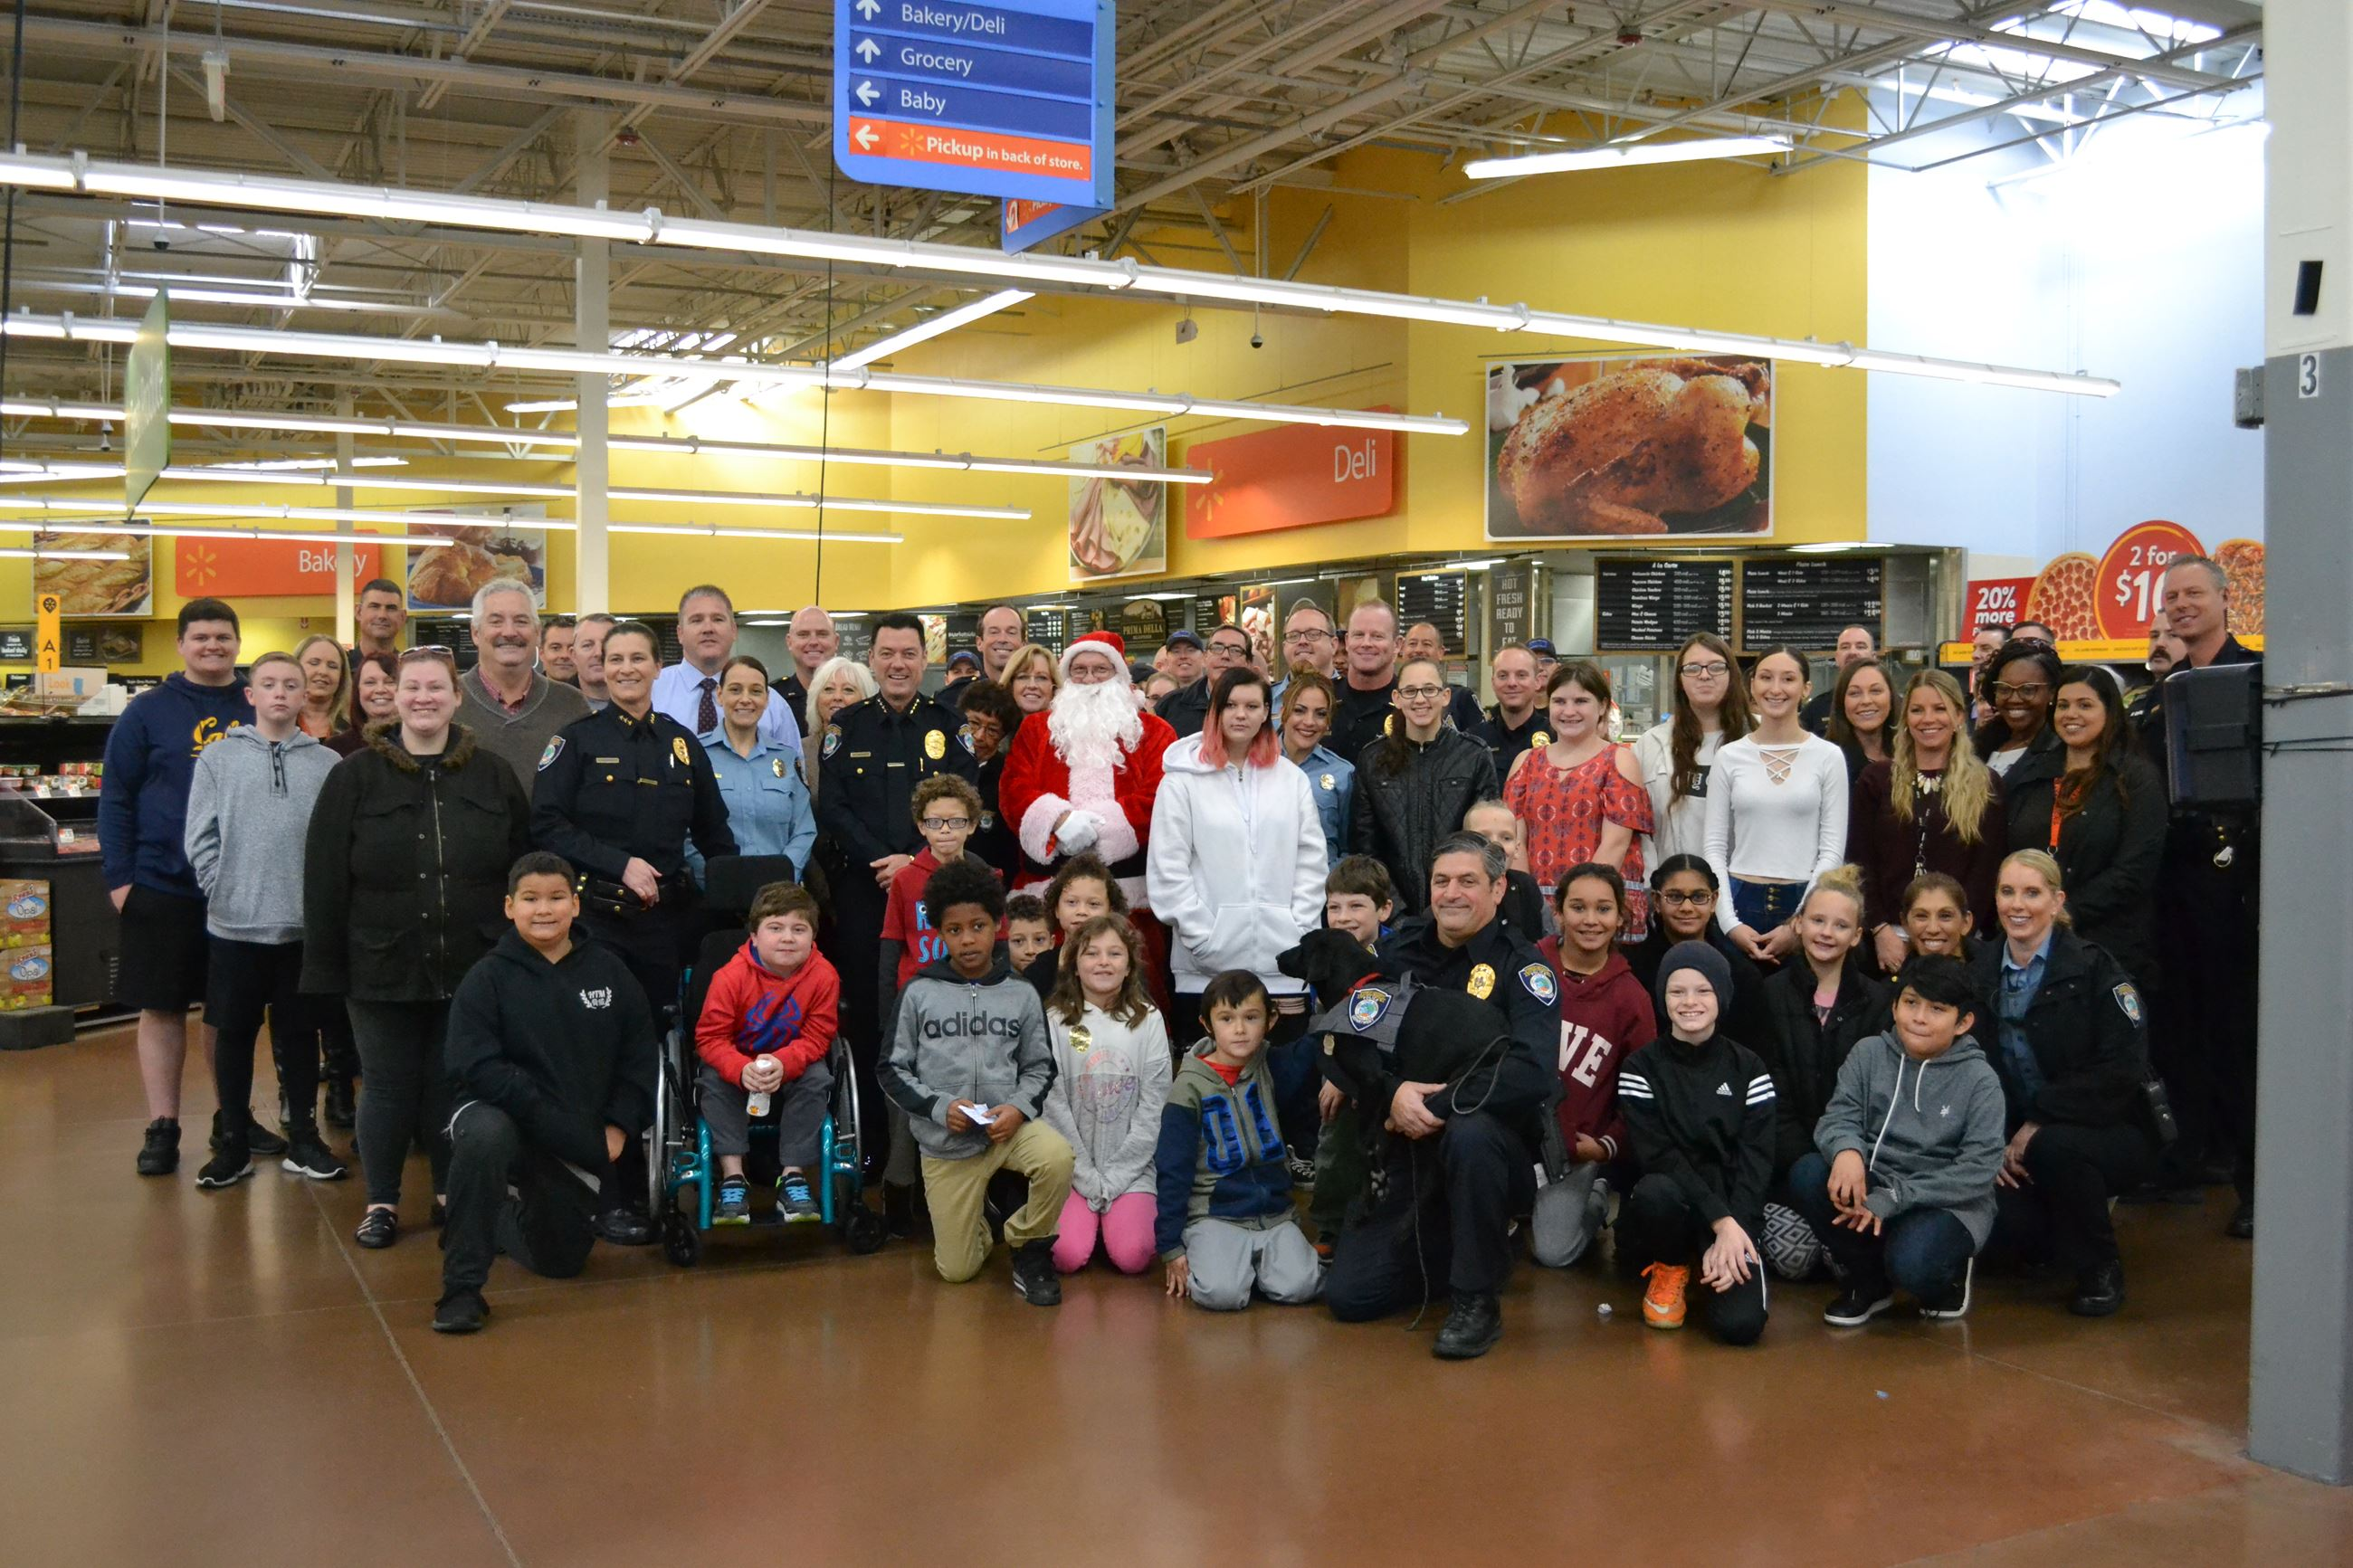 Group Photo with Police Personnel and Shoppers